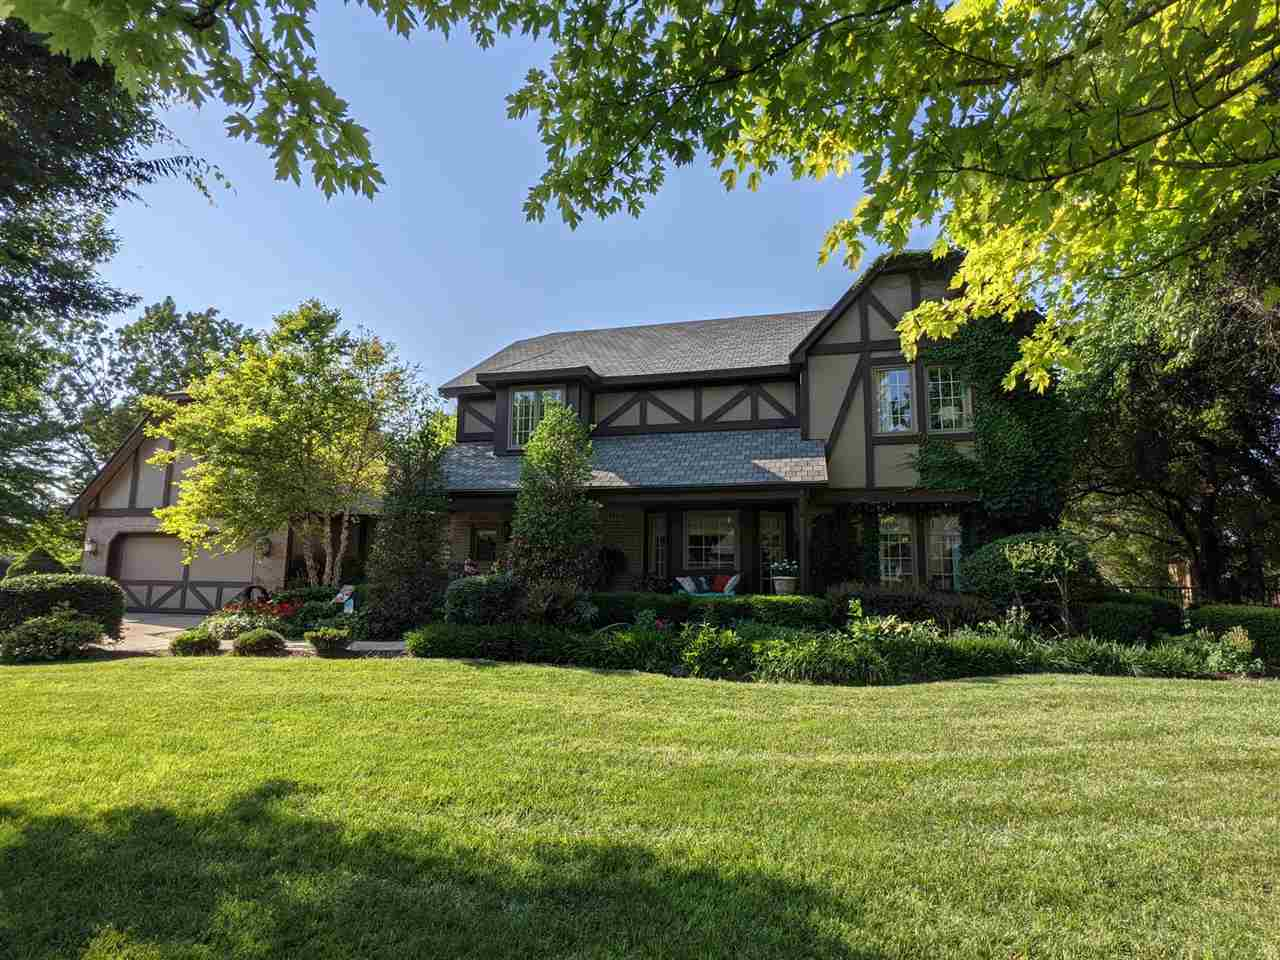 A very exceptional Overbrook 2 story home with 5 bedrooms, 4 baths. Separate living and dining plus